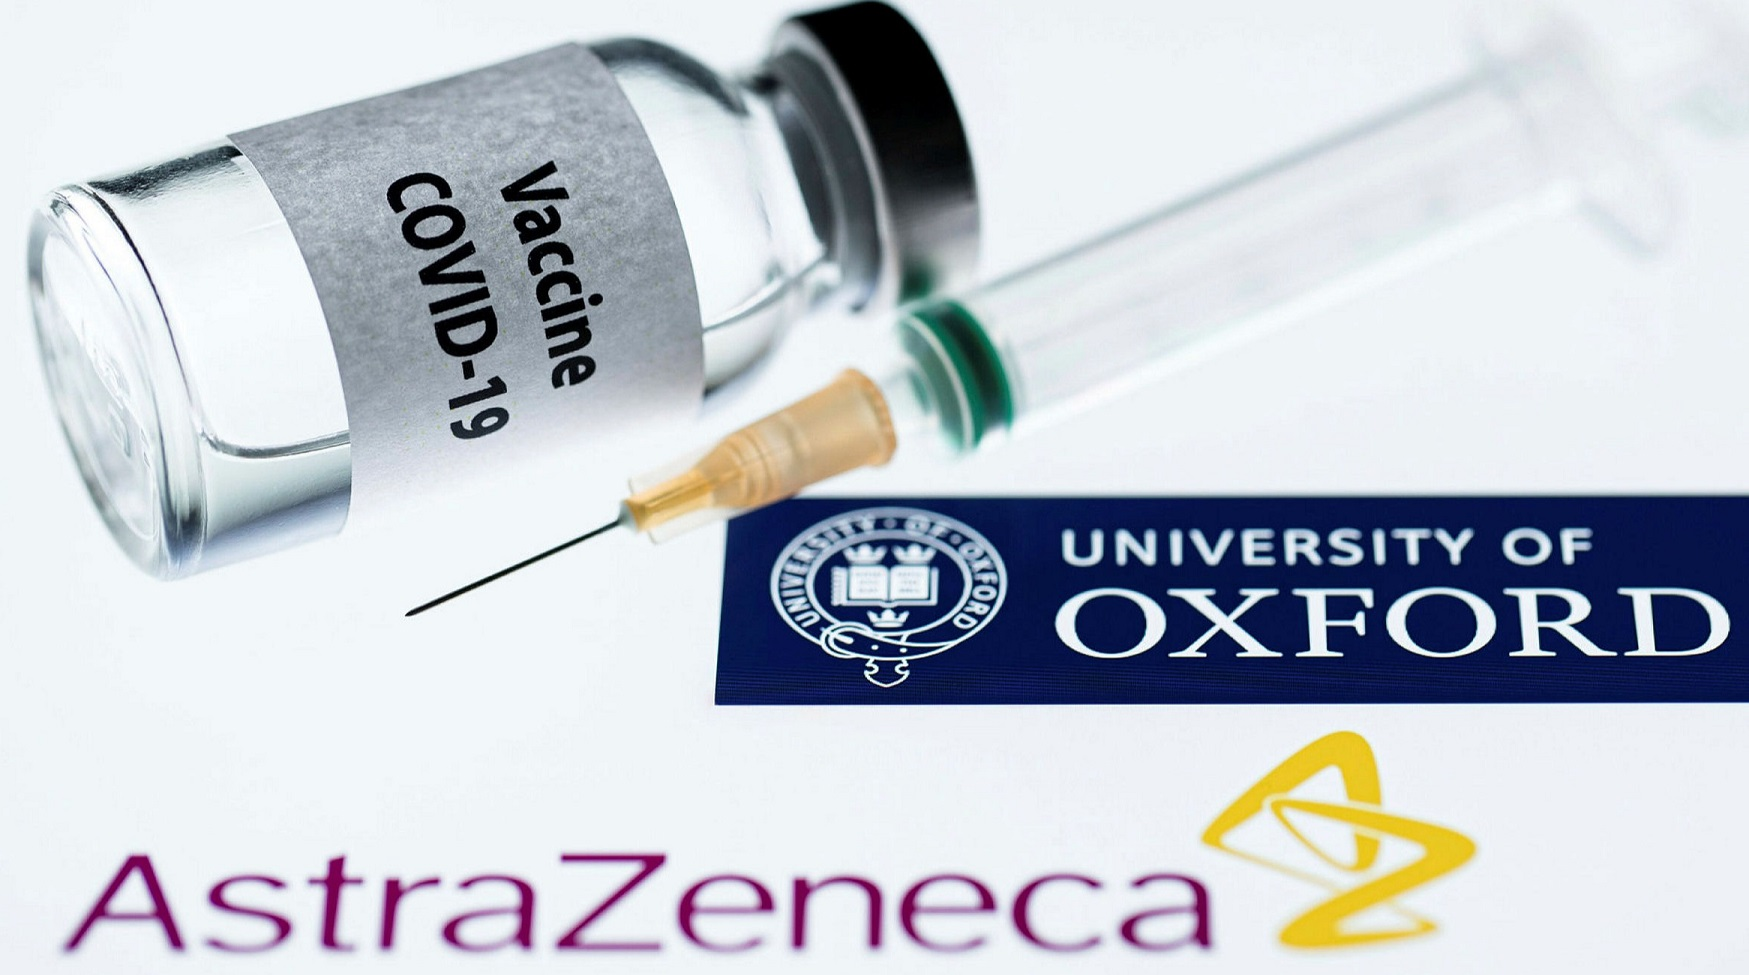 Oxford/Astrazeneca Vaccine